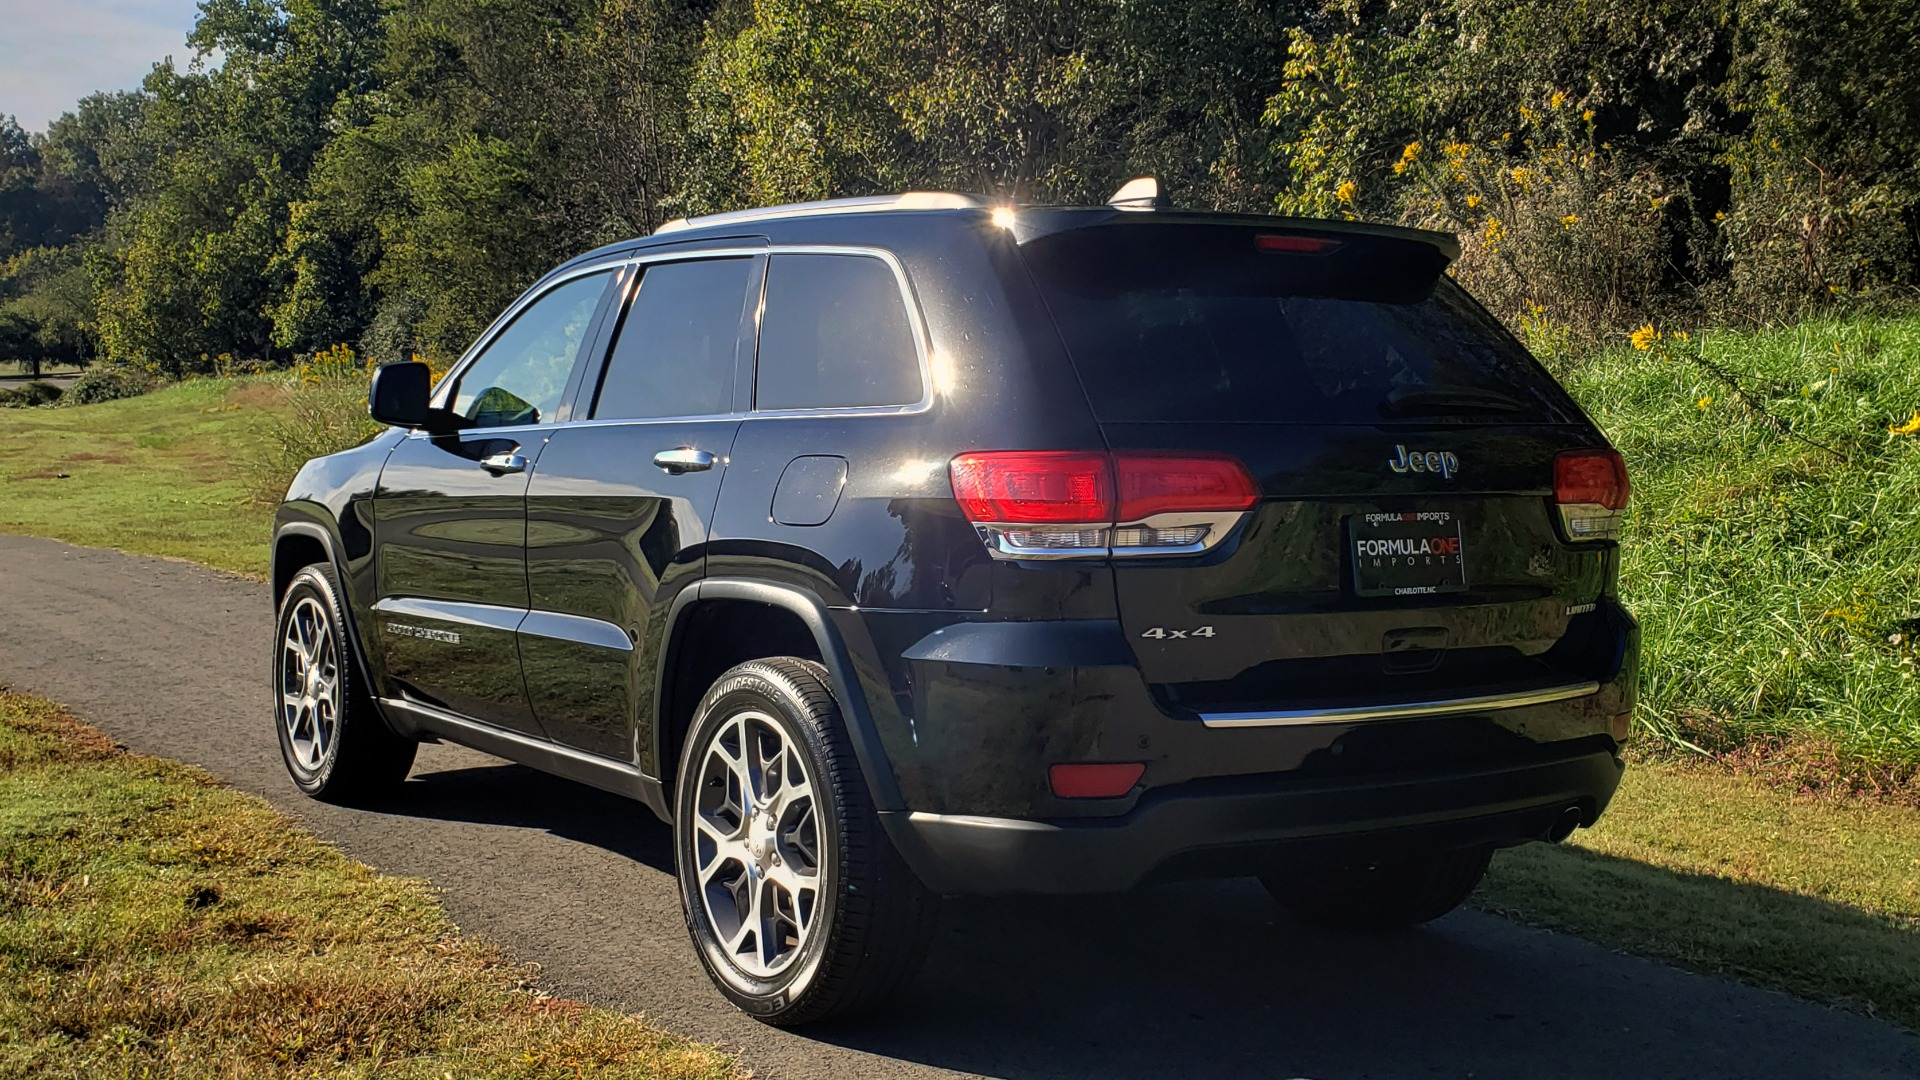 Used 2019 Jeep GRAND CHEROKEE LIMITED 4X4 / NAV / SUNROOF / BLIND SPOT MONITOR / REARVIEW for sale Sold at Formula Imports in Charlotte NC 28227 8